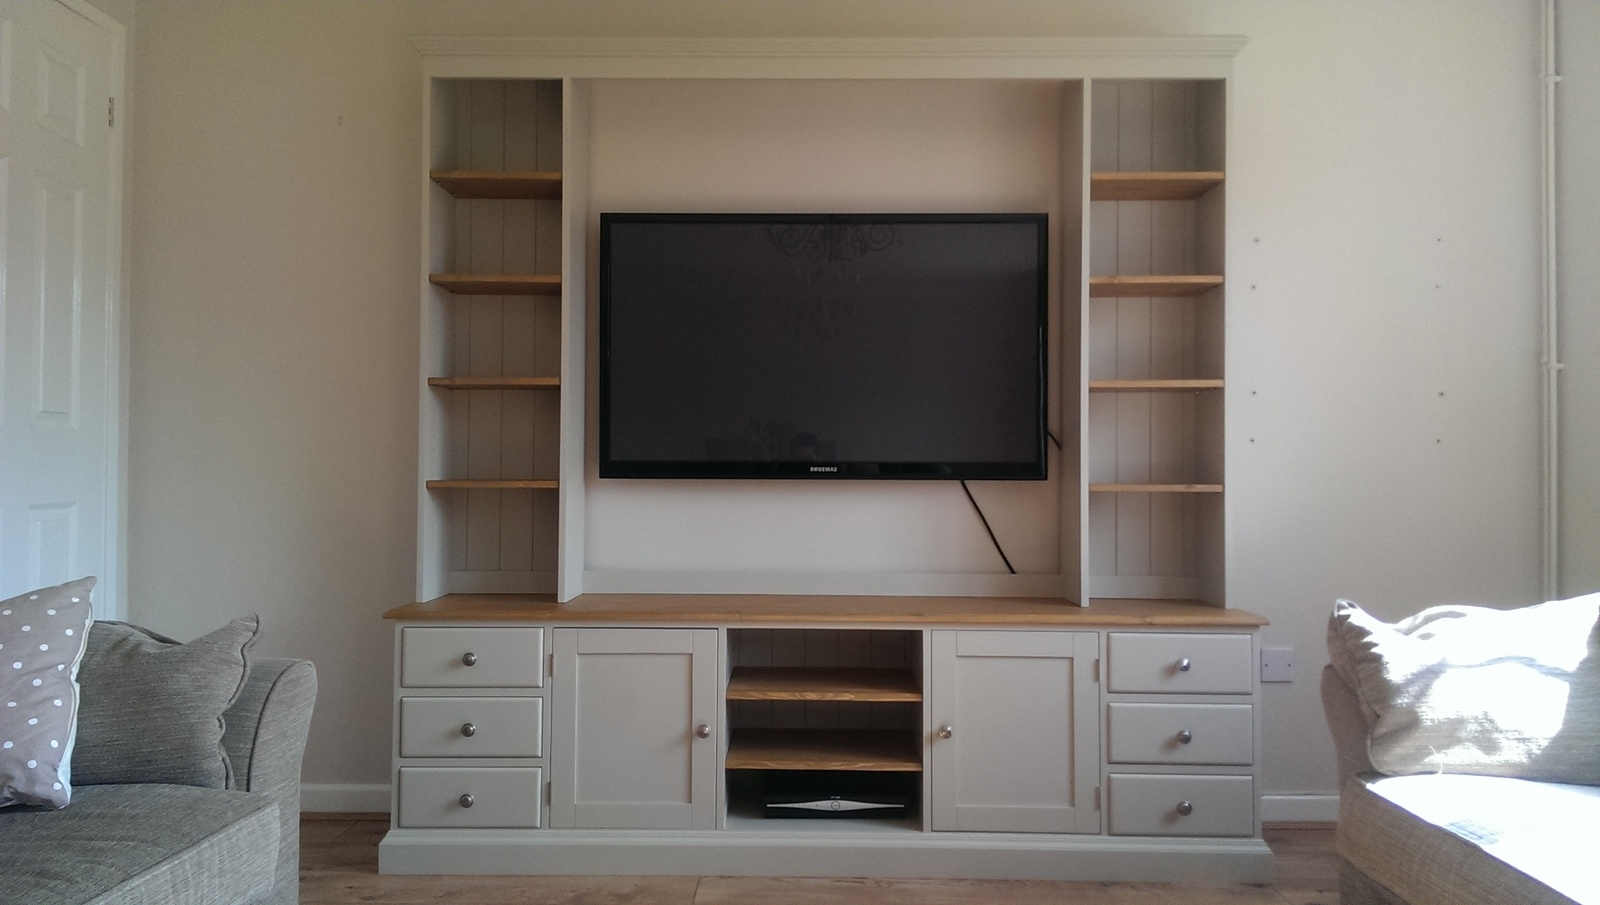 Most Recently Released Bespoke Tv Stand Pertaining To Tv / Entertainment Unit – Bespoke Living Room Furniture – Pine (View 4 of 15)